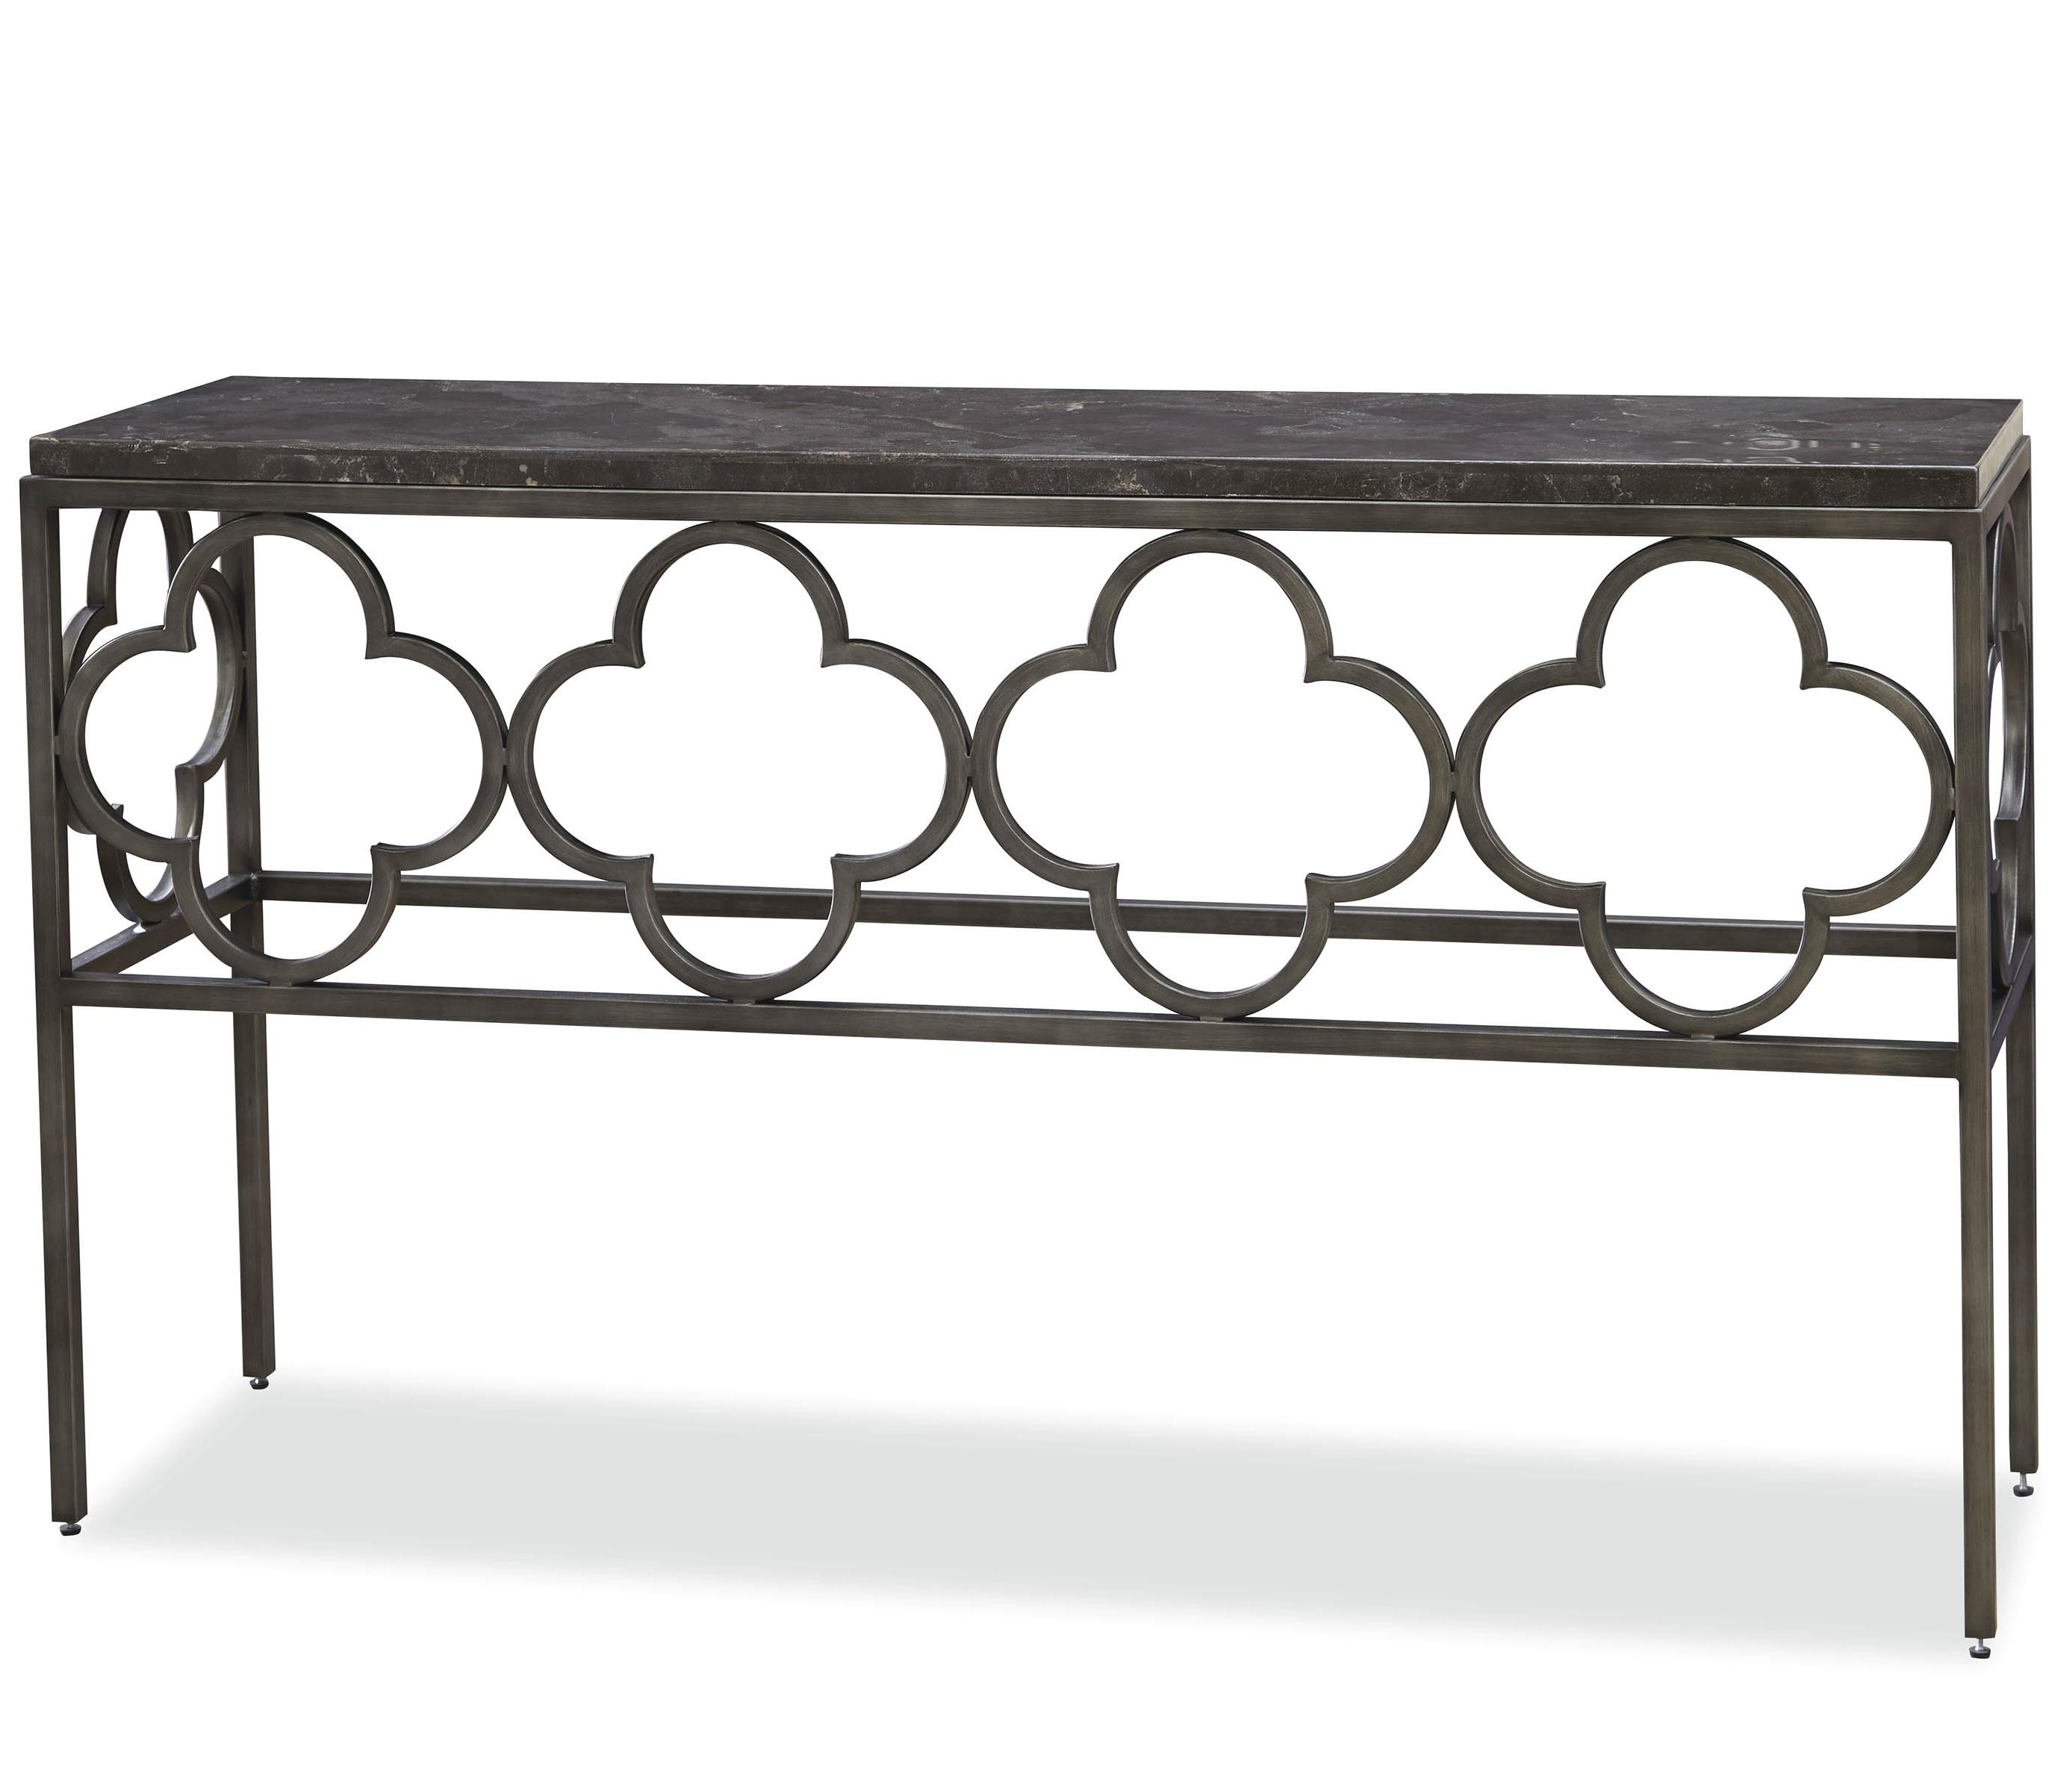 Morris Home Furnishings Bordeaux Bordeaux Console Table - Item Number: 450803